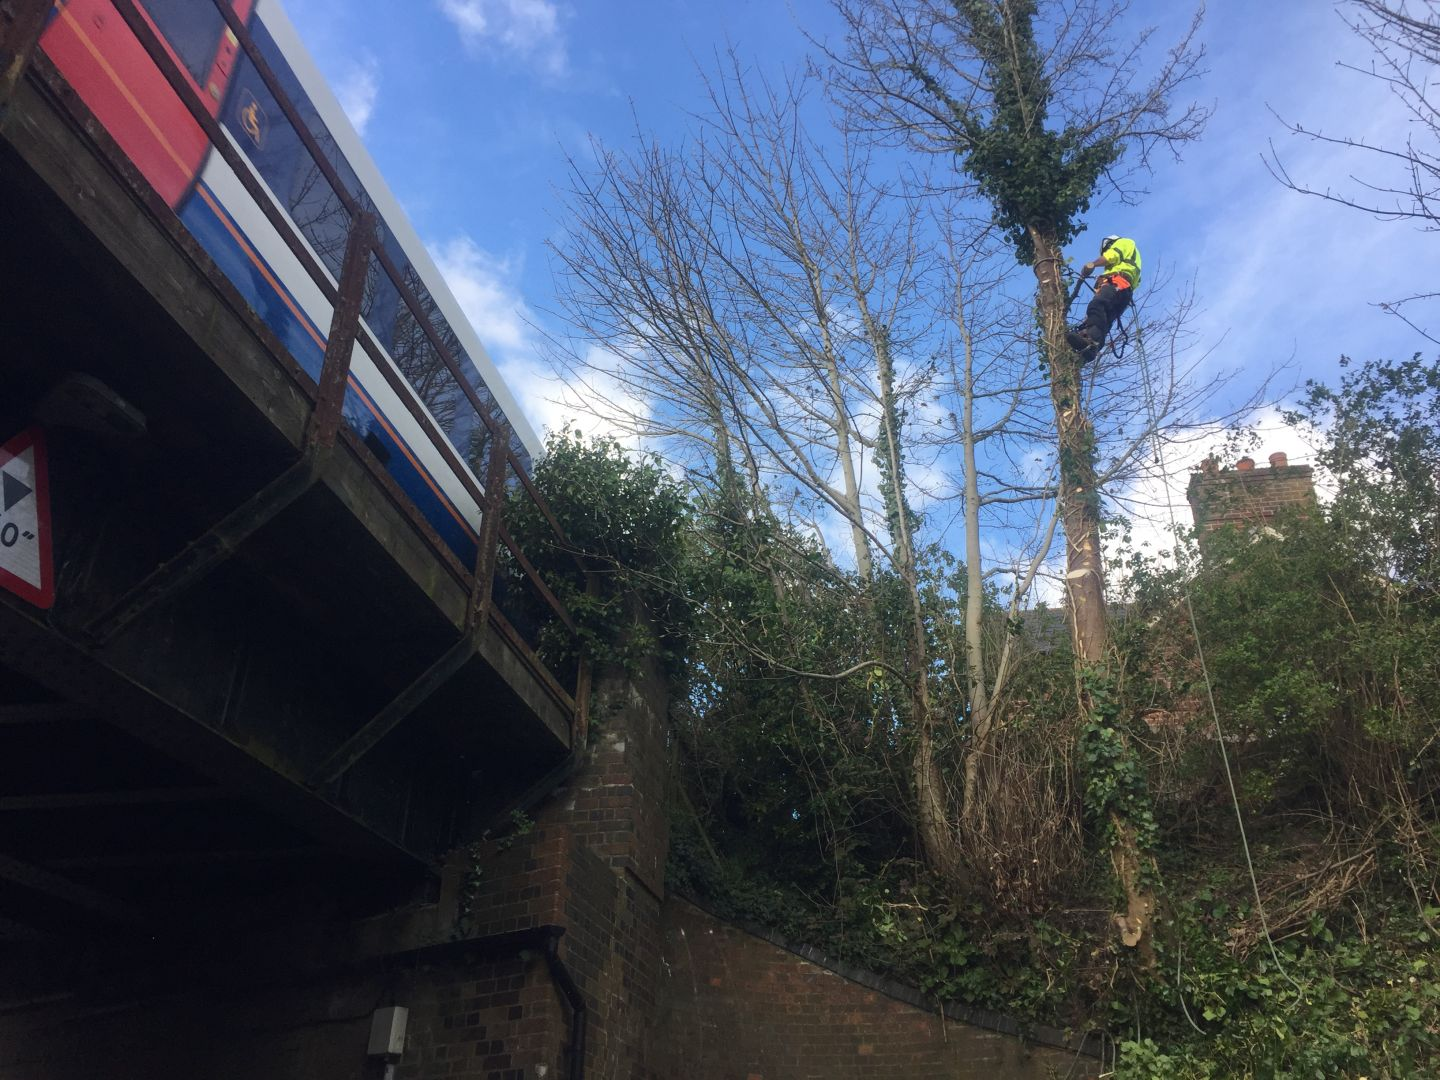 tree felling, dismantling, Dorchester, tree coppicing in Dorchester, embankment, train, railway line